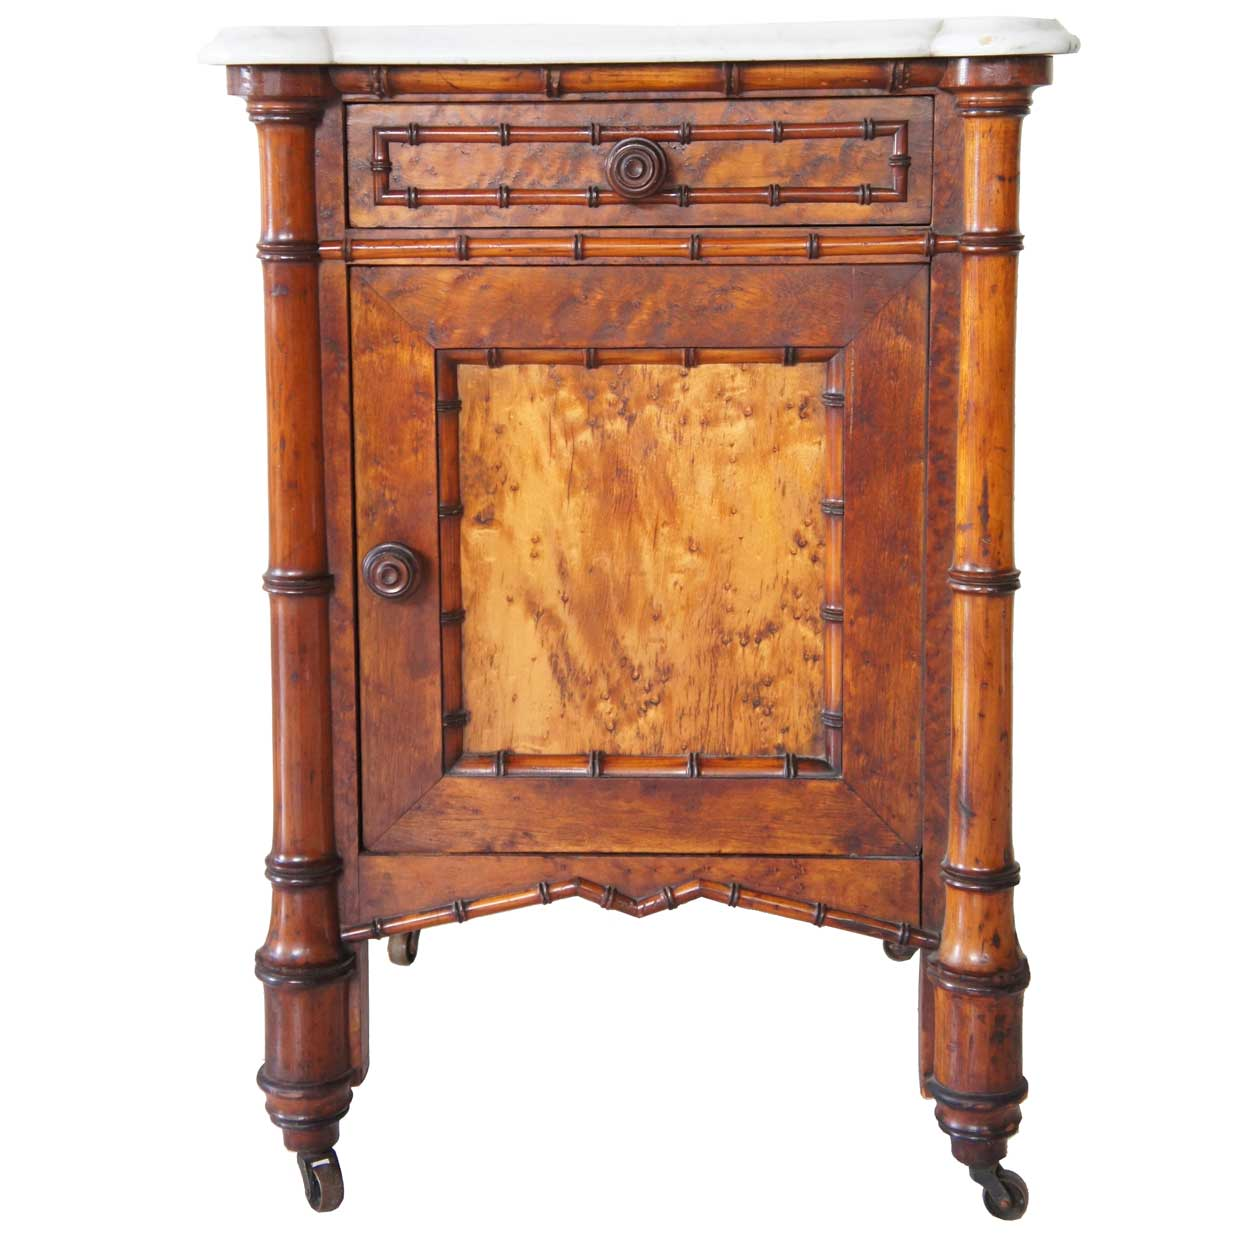 Seven Piece American R J Horner Birdseye Maple Faux Bamboo Bedroom Suite For Sale Antiques